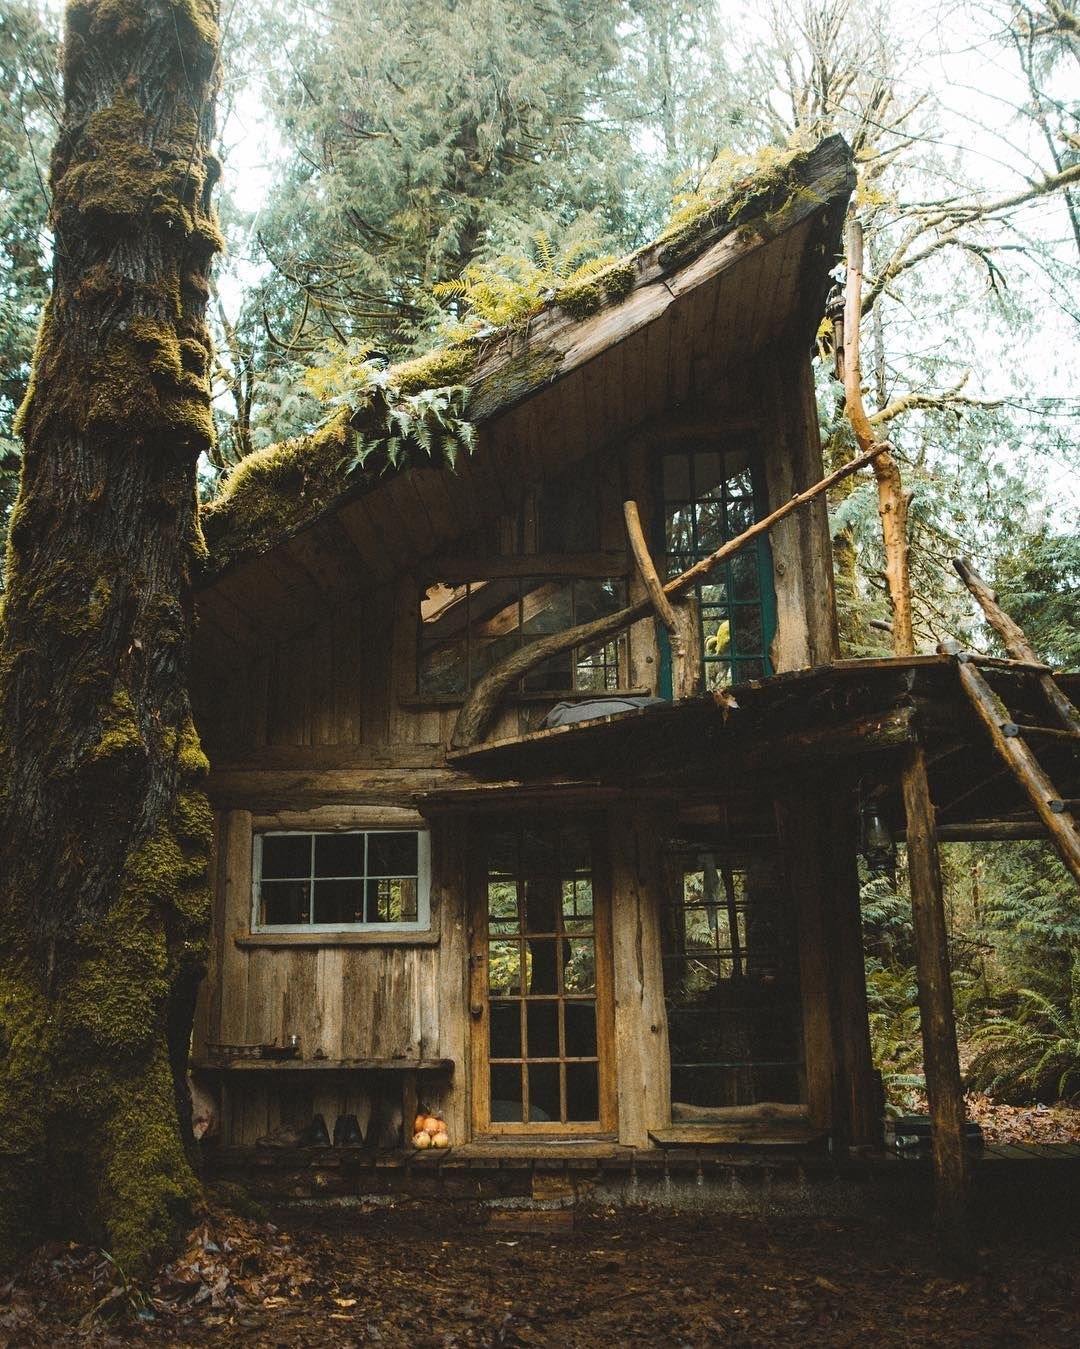 5 971 Mentions J Aime 90 Commentaires Dylan Kato Dylankato Sur Instagram Mossy Rooftops House In The Woods Cabins In The Woods Cabin Life